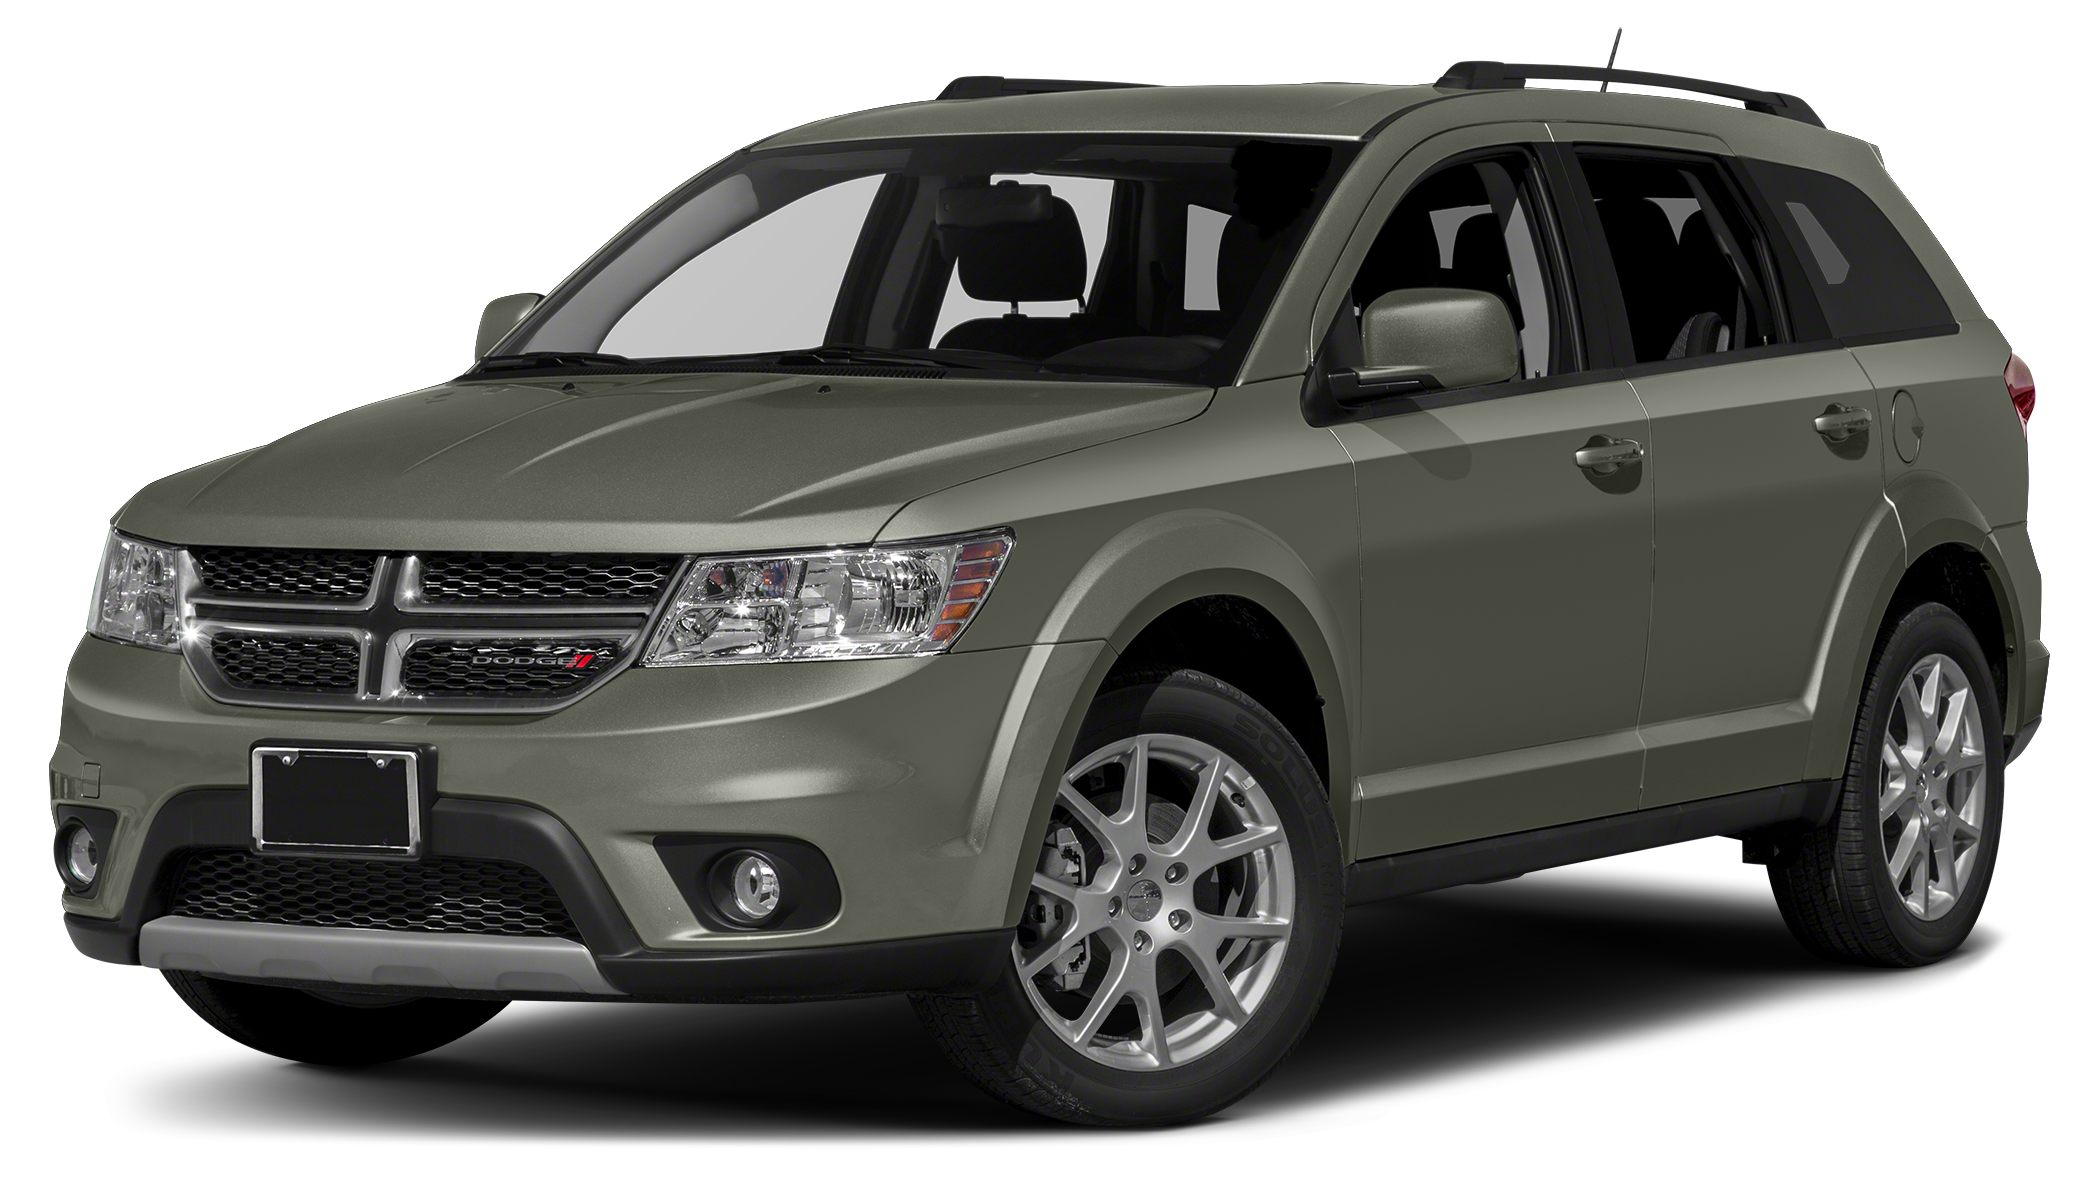 2017 Dodge Journey SXT Miles 2972Color Verde Oliva Olive Green Stock N5407 VIN 3C4PDCBB9HT